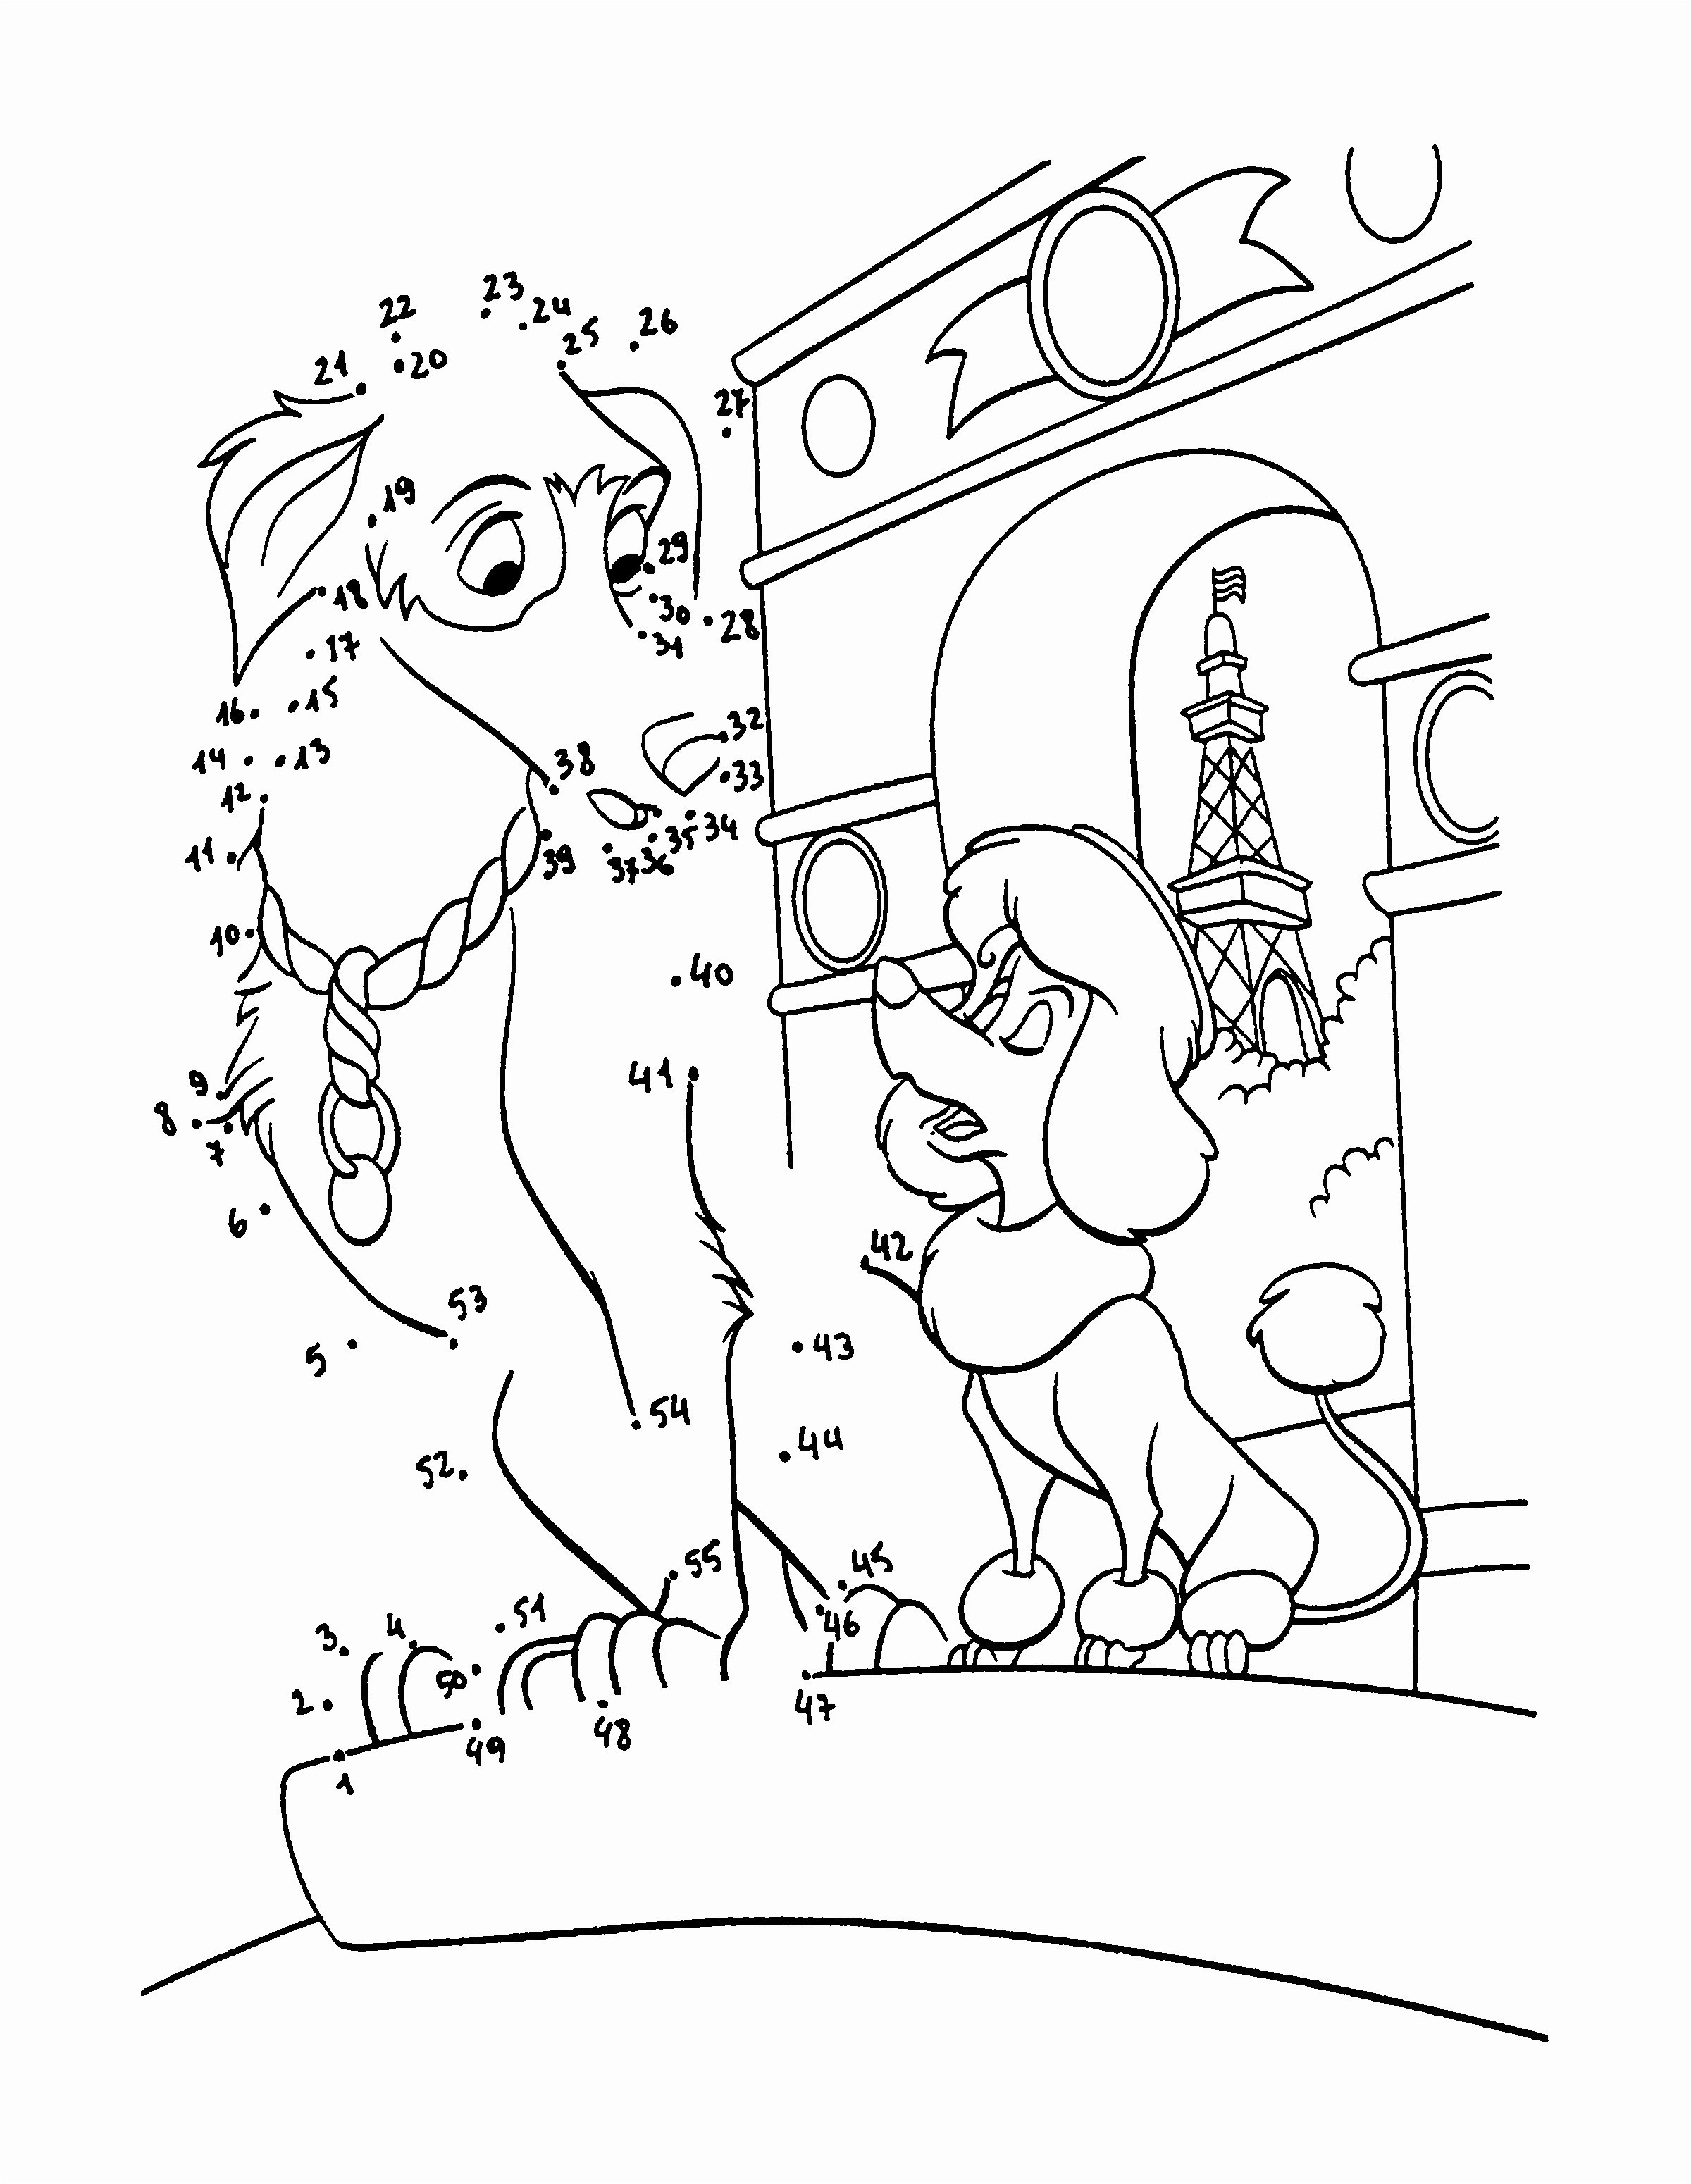 electrician coloring pages for kids - photo#48